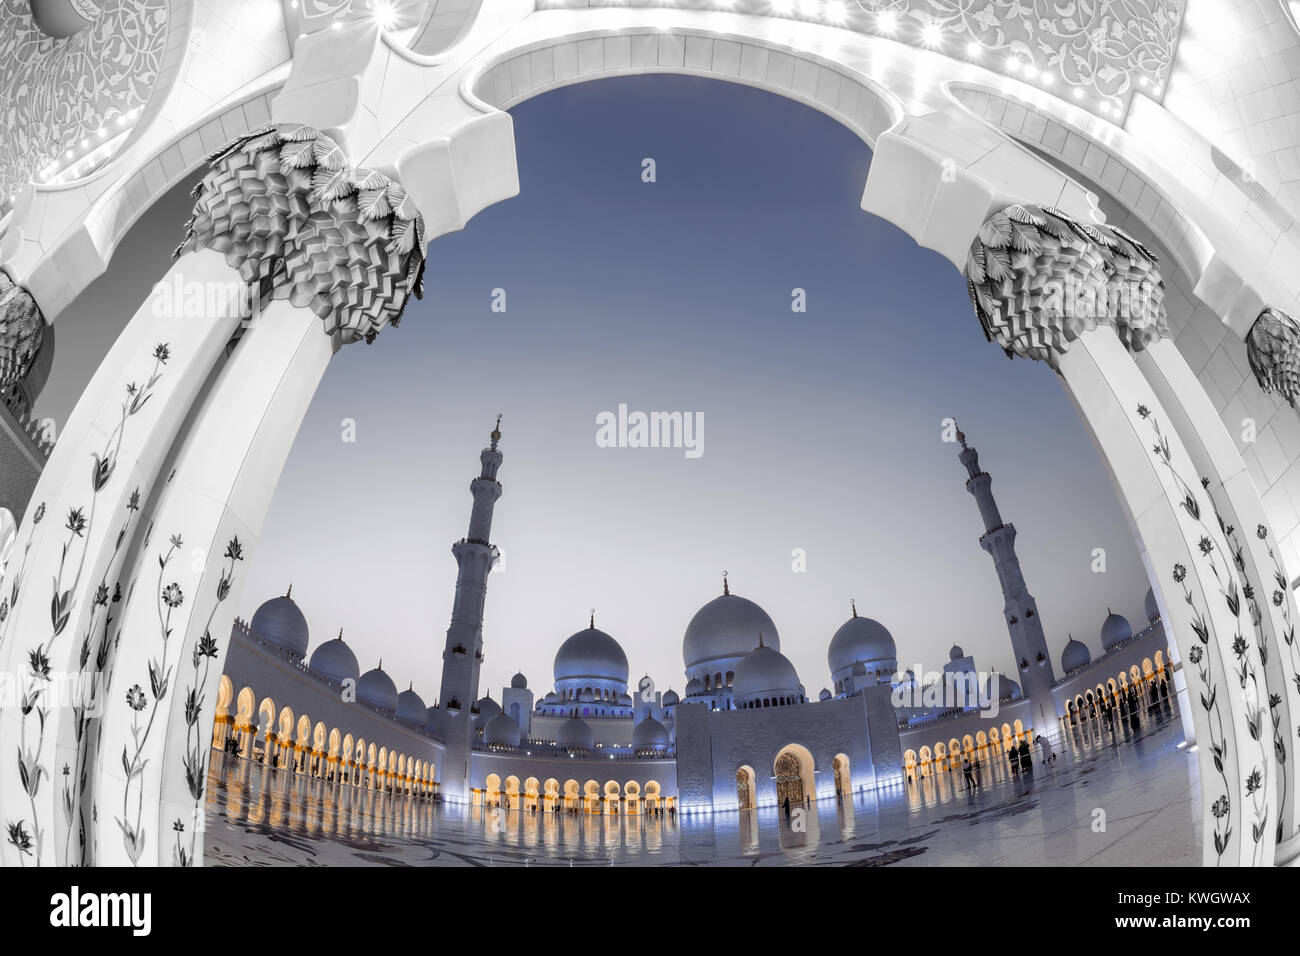 Sheikh Zayed mosque in Abu Dhabi, United Arab Emirates, Middle East - Stock Image